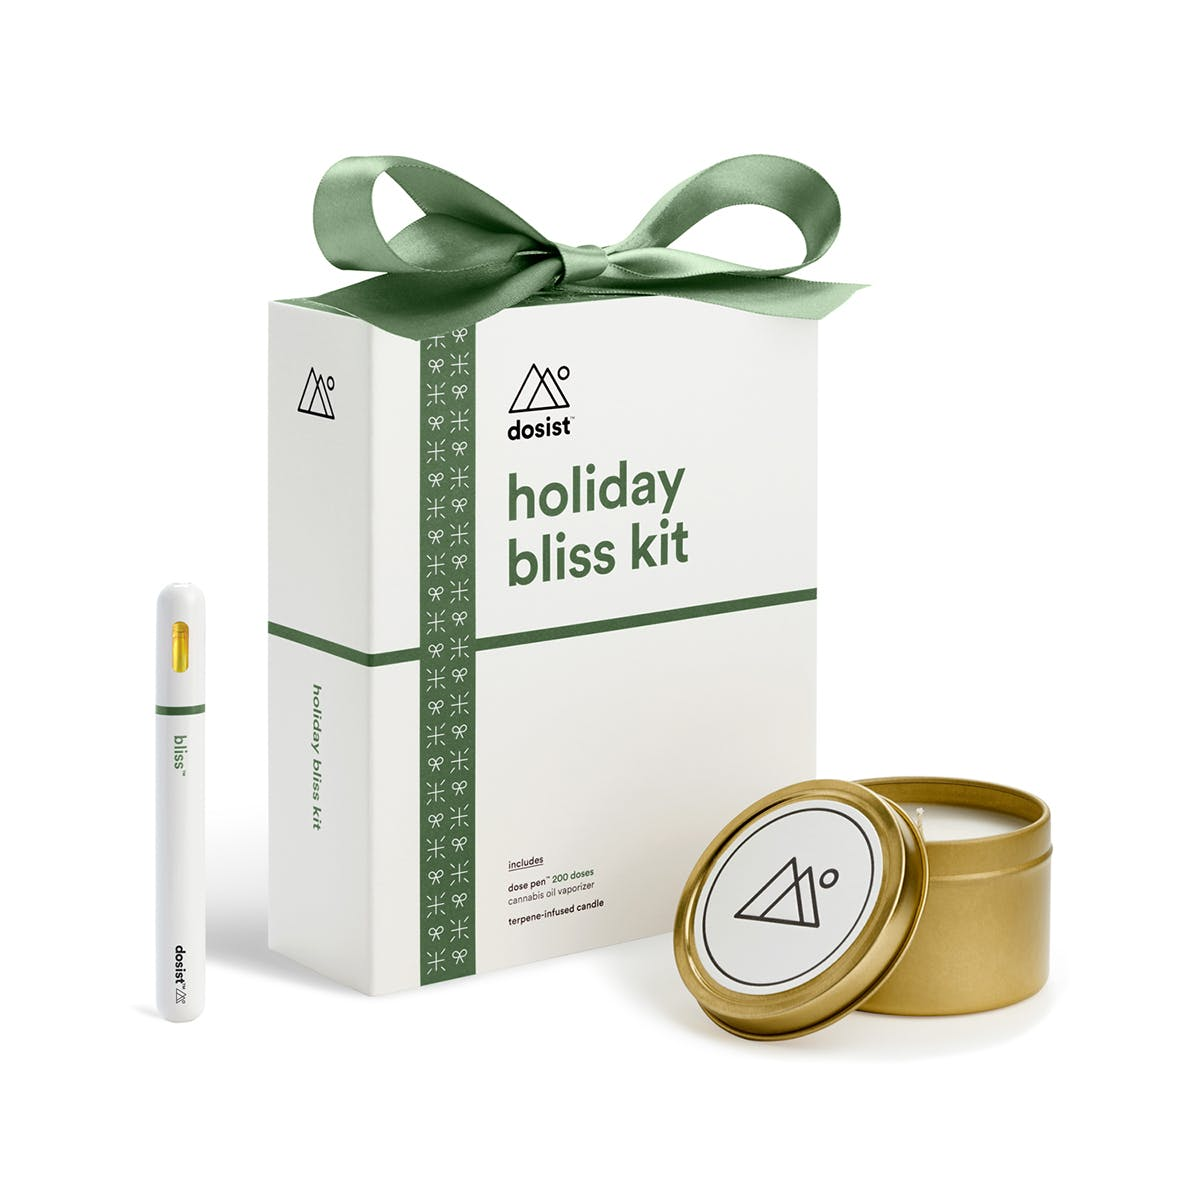 Dosist Holiday Bliss Kit